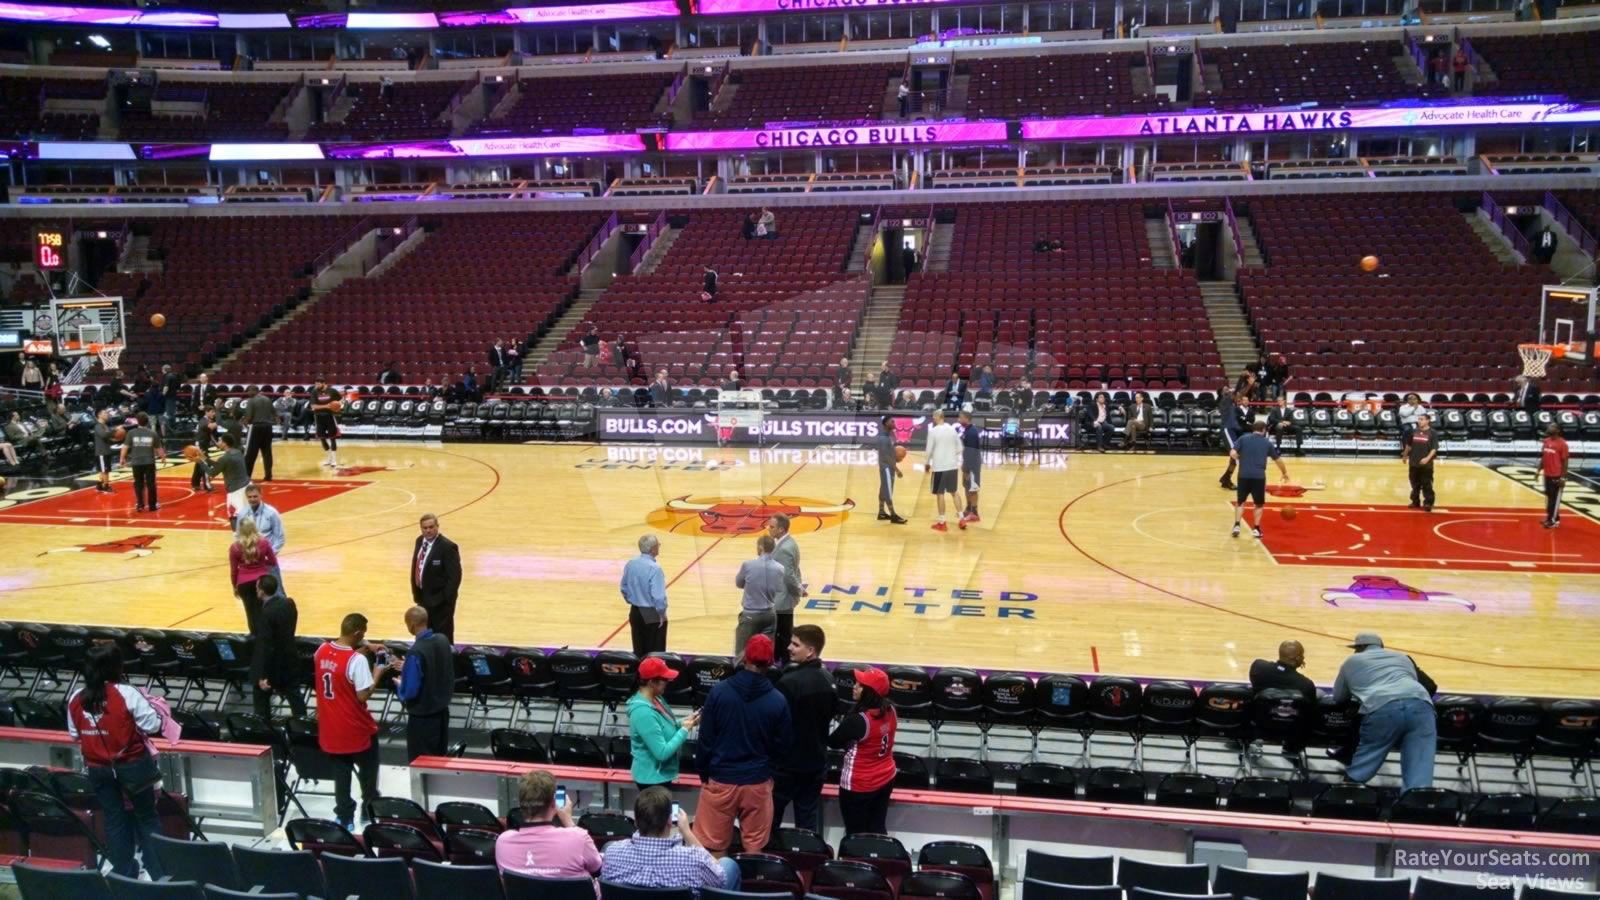 Chicago Bulls - United Center Section 111 - RateYourSeats.com